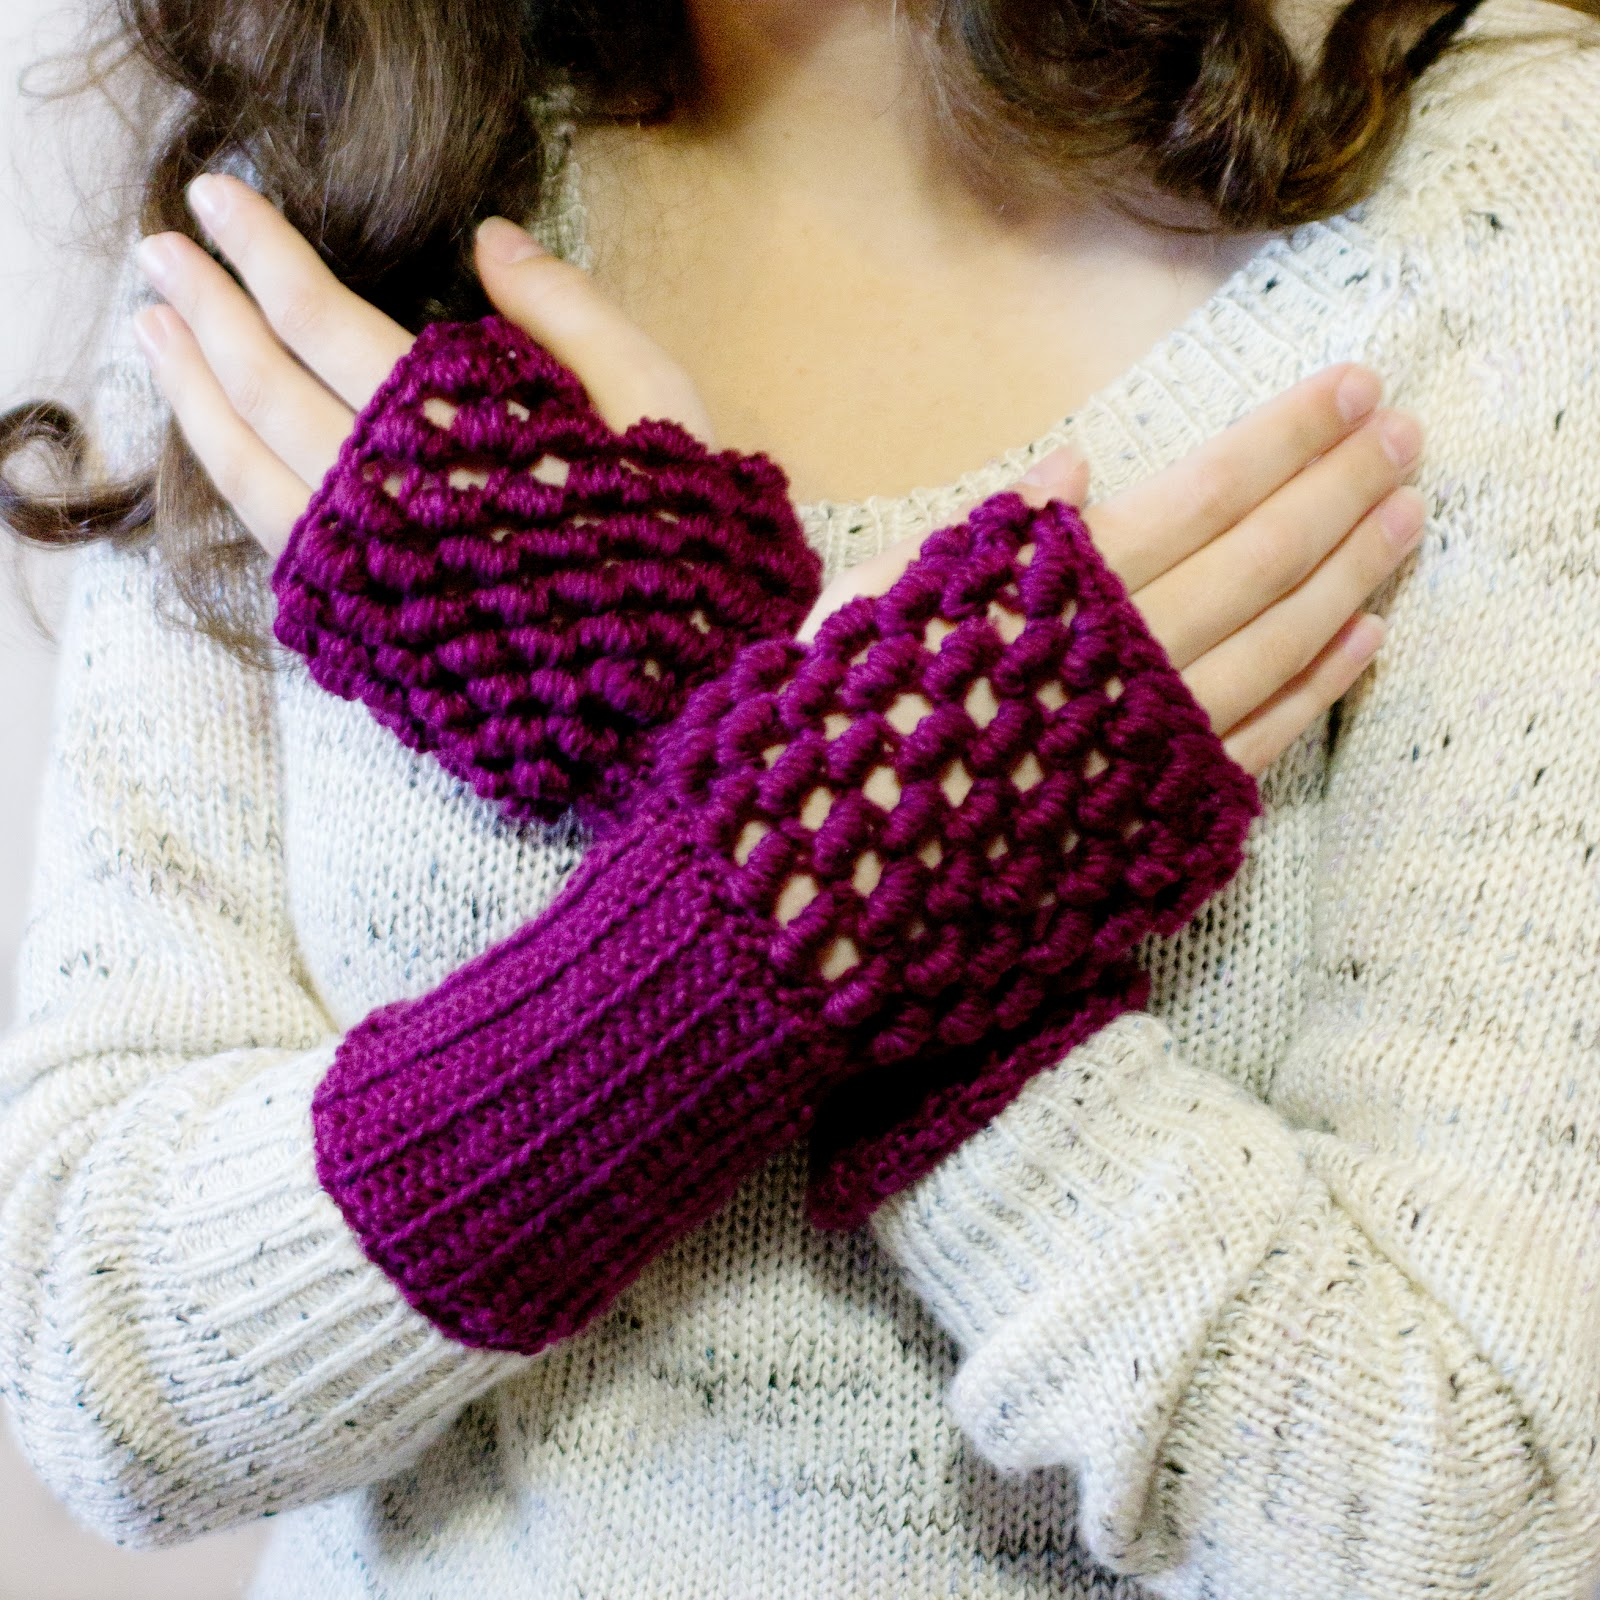 Crochet Fingerless Gloves Picture Tutorial : Hopeful Honey Craft, Crochet, Create: Safe & Sound ...